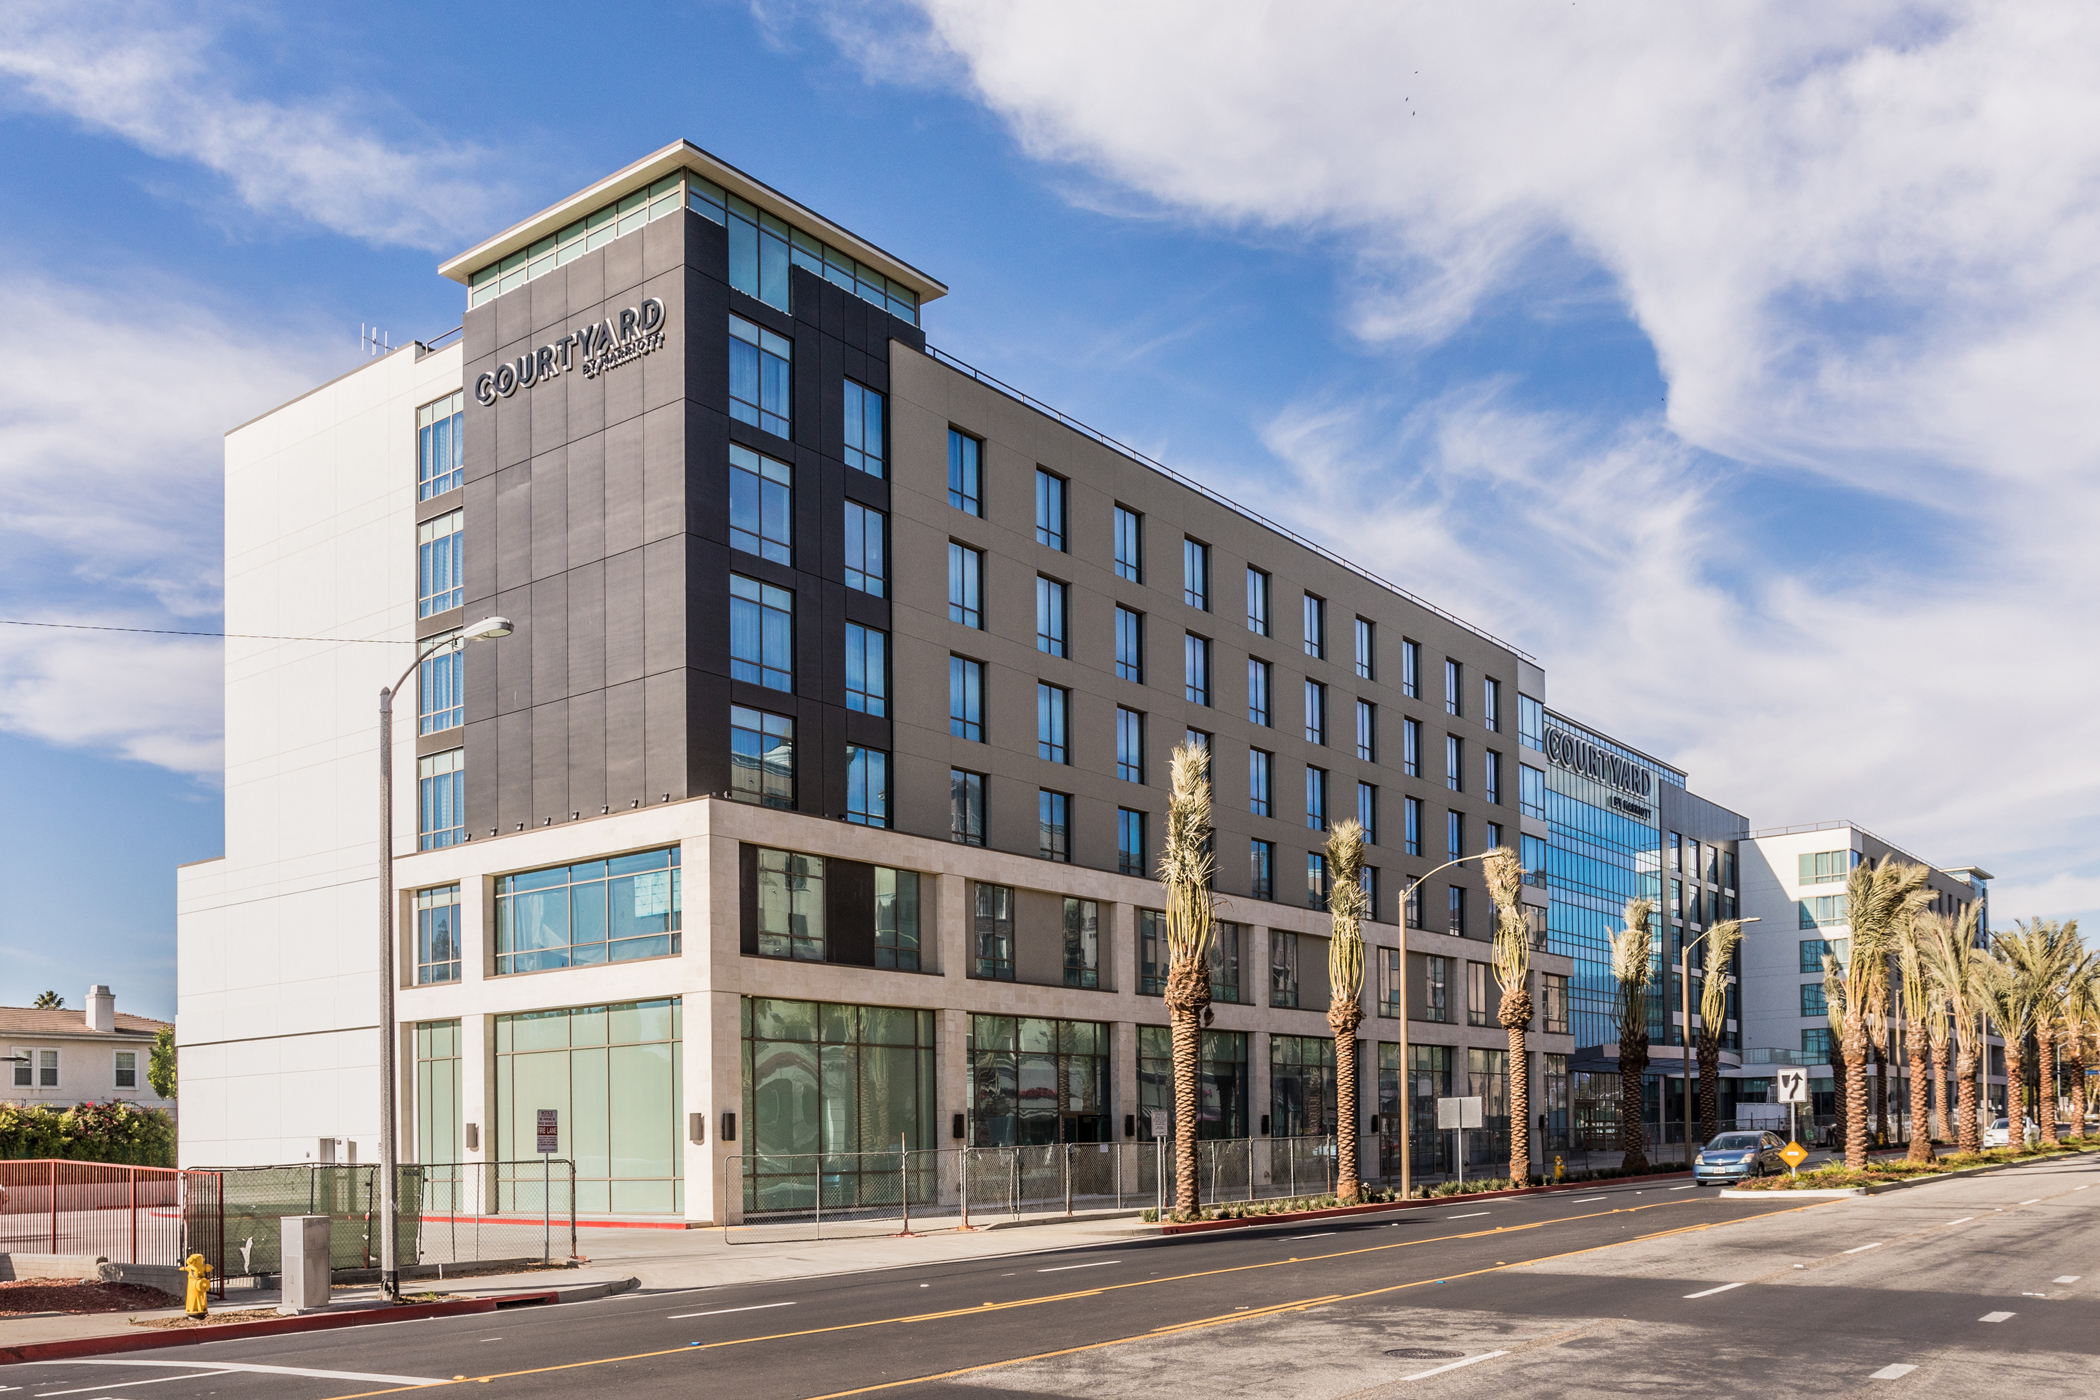 The 288-room Courtyard by Marriott Monterey Park was the largest new hotel to open in Los Angeles County during the first half of the year. (CoStar)